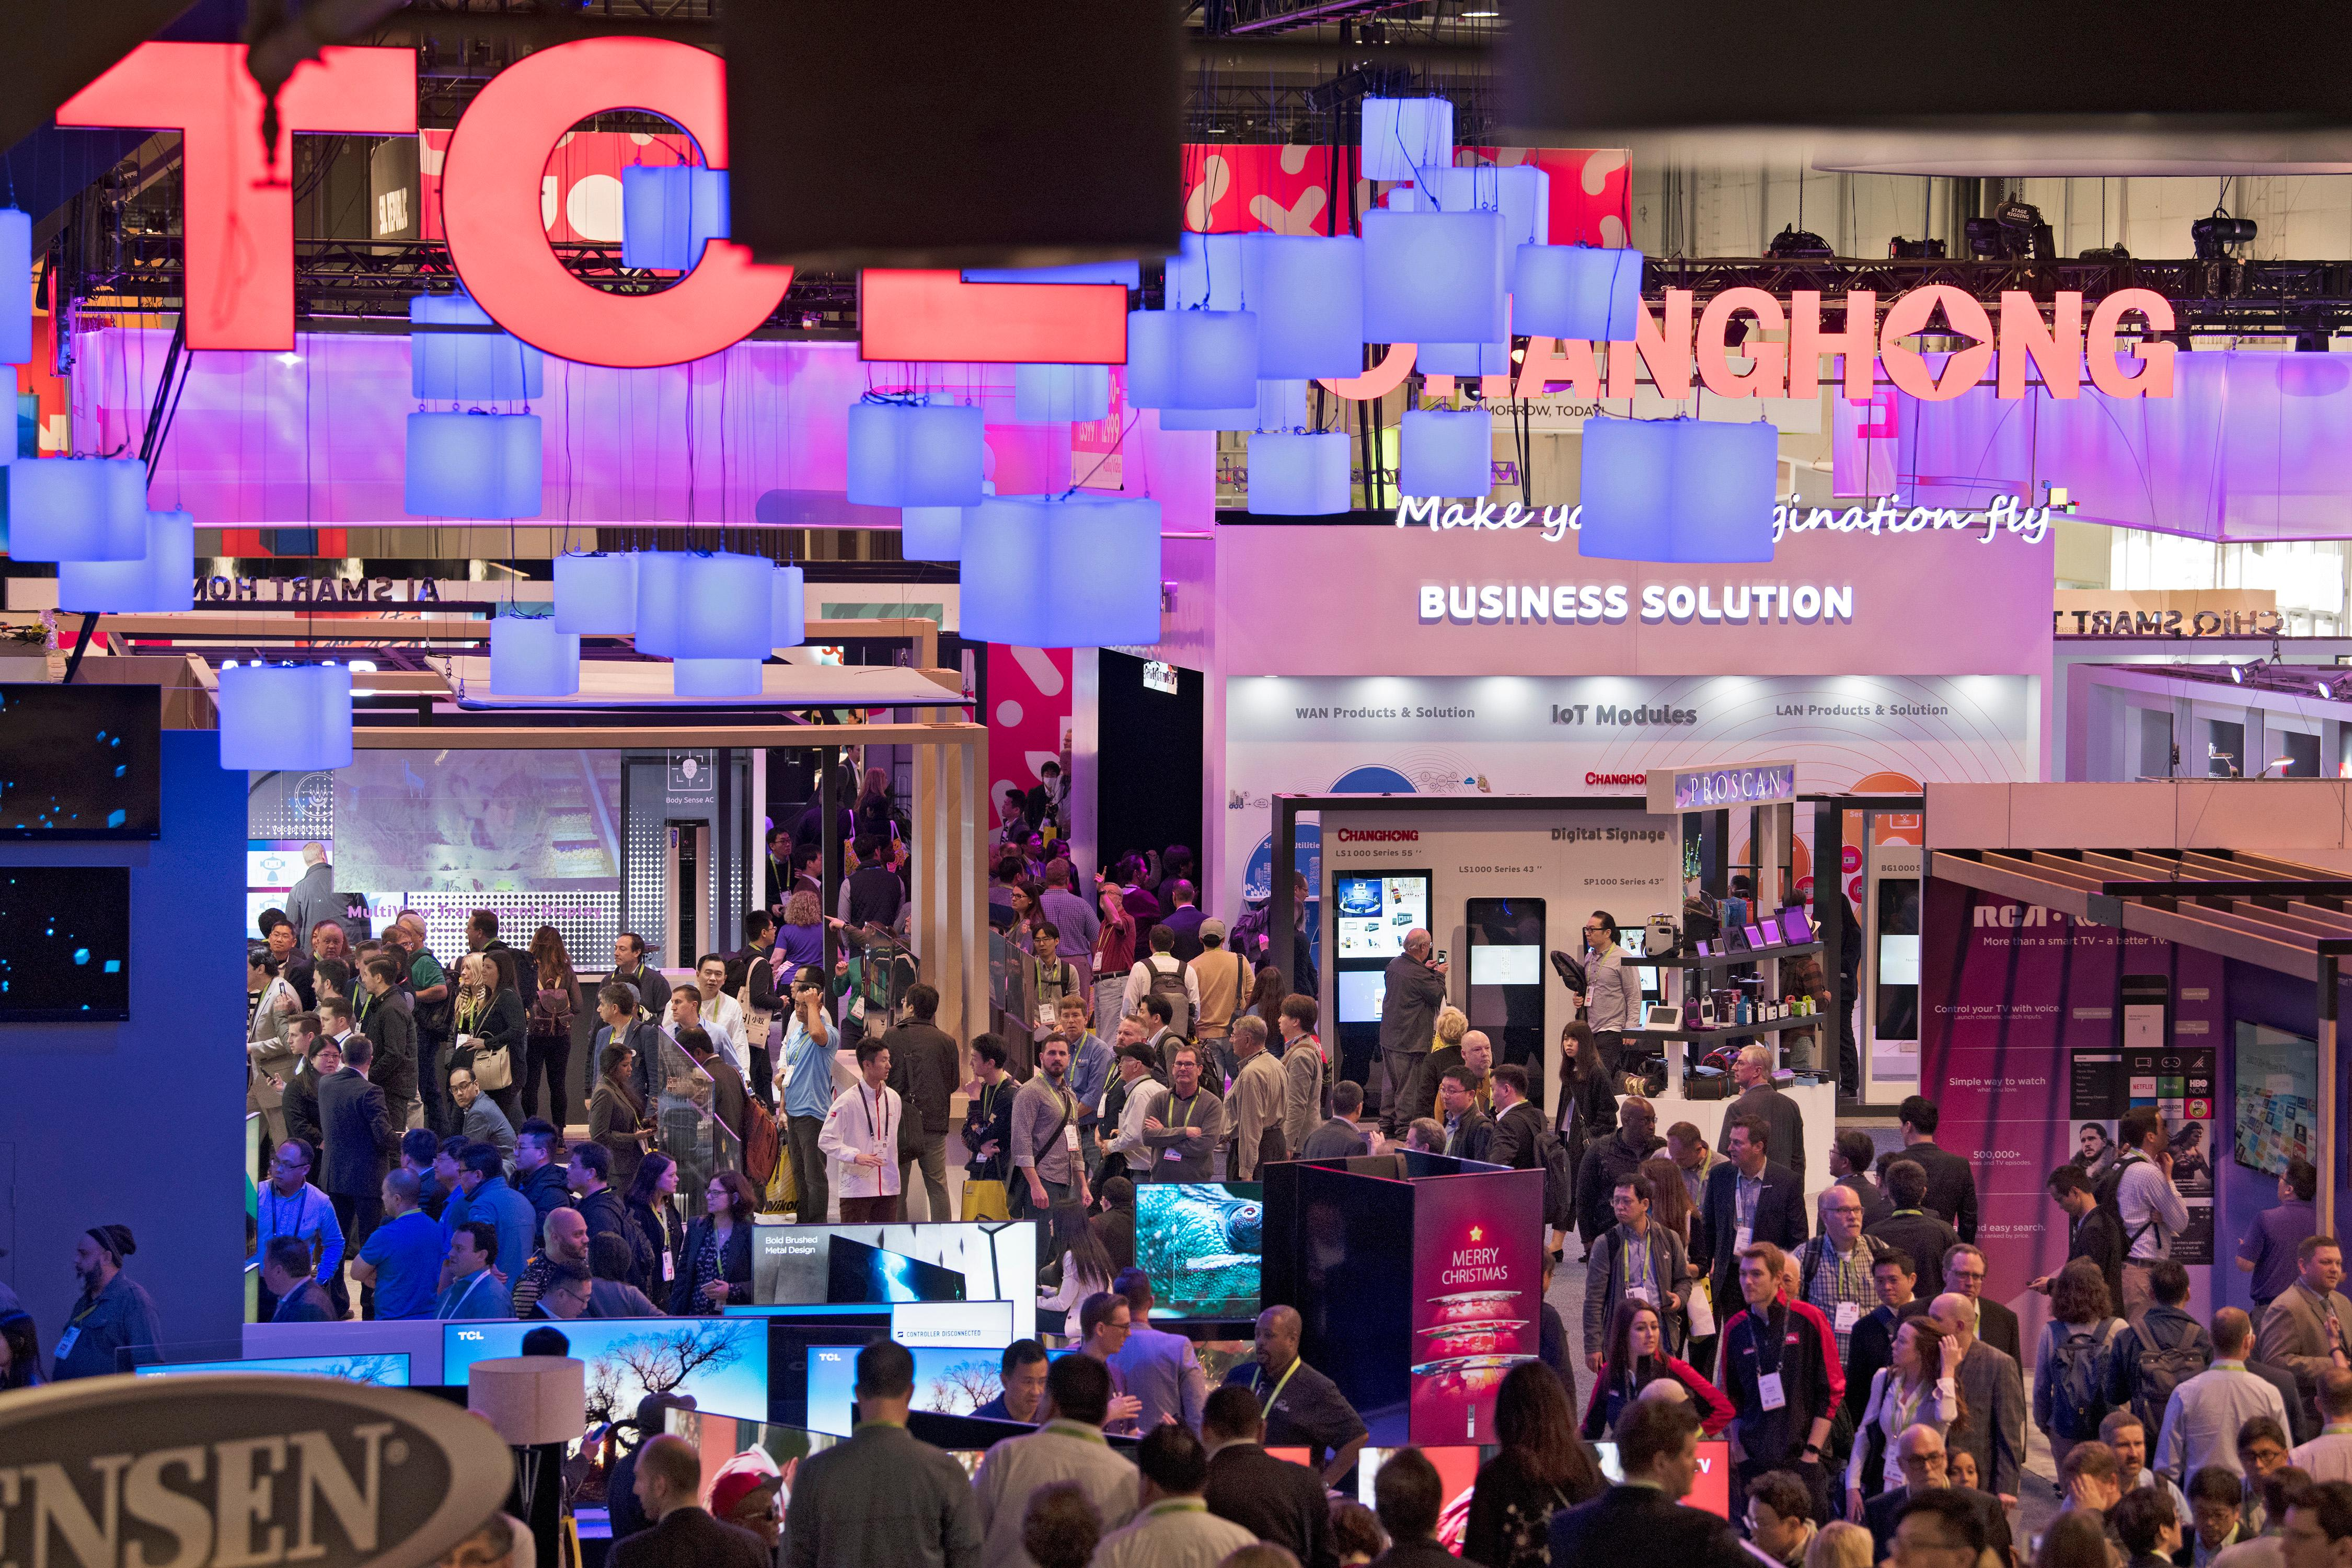 Some of the over 175,000 attendees are seen during the second day of CES Wednesday, January 10, 2018, at the Las Vegas Convention Center. CREDIT: Sam Morris/Las Vegas News Bureau